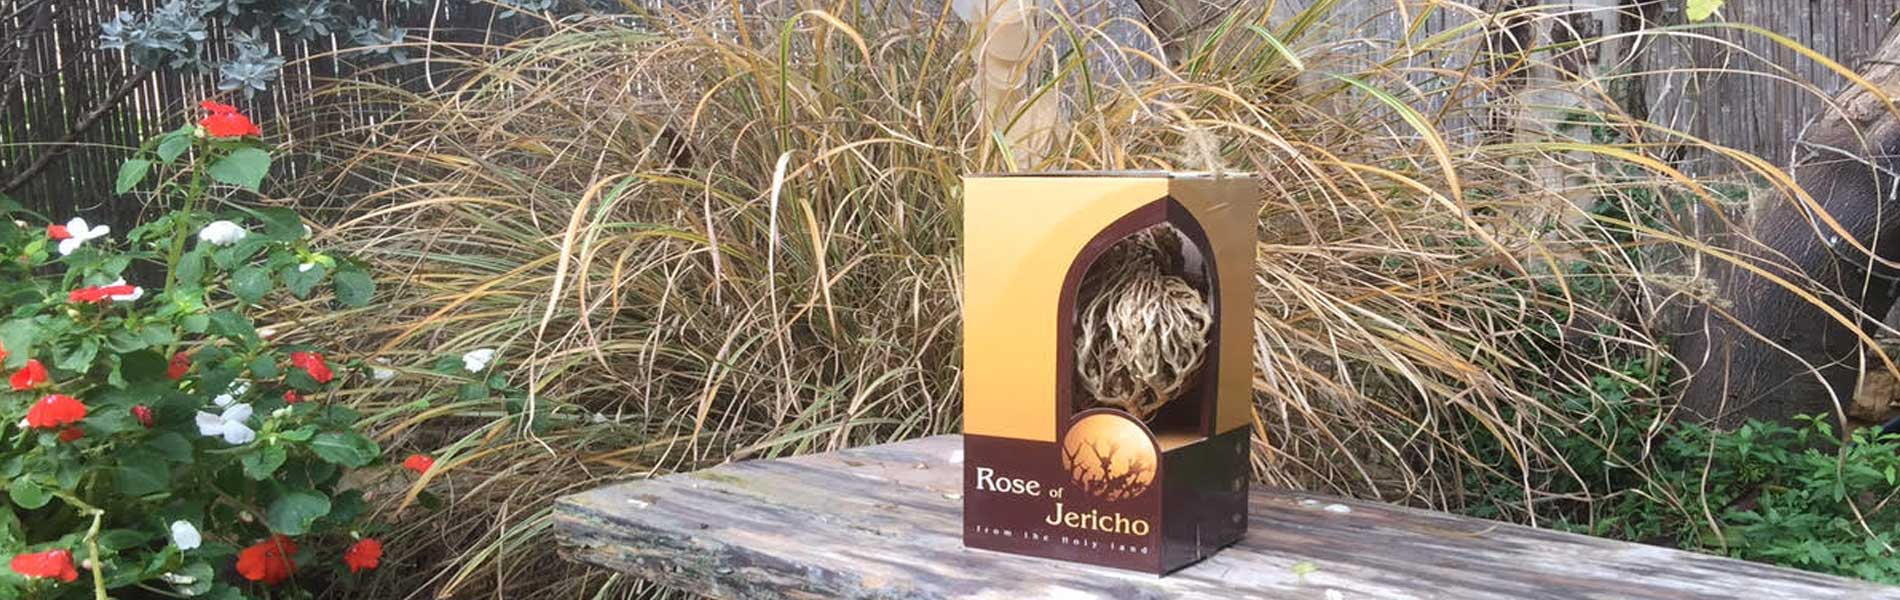 About us the real Rose of Jericho